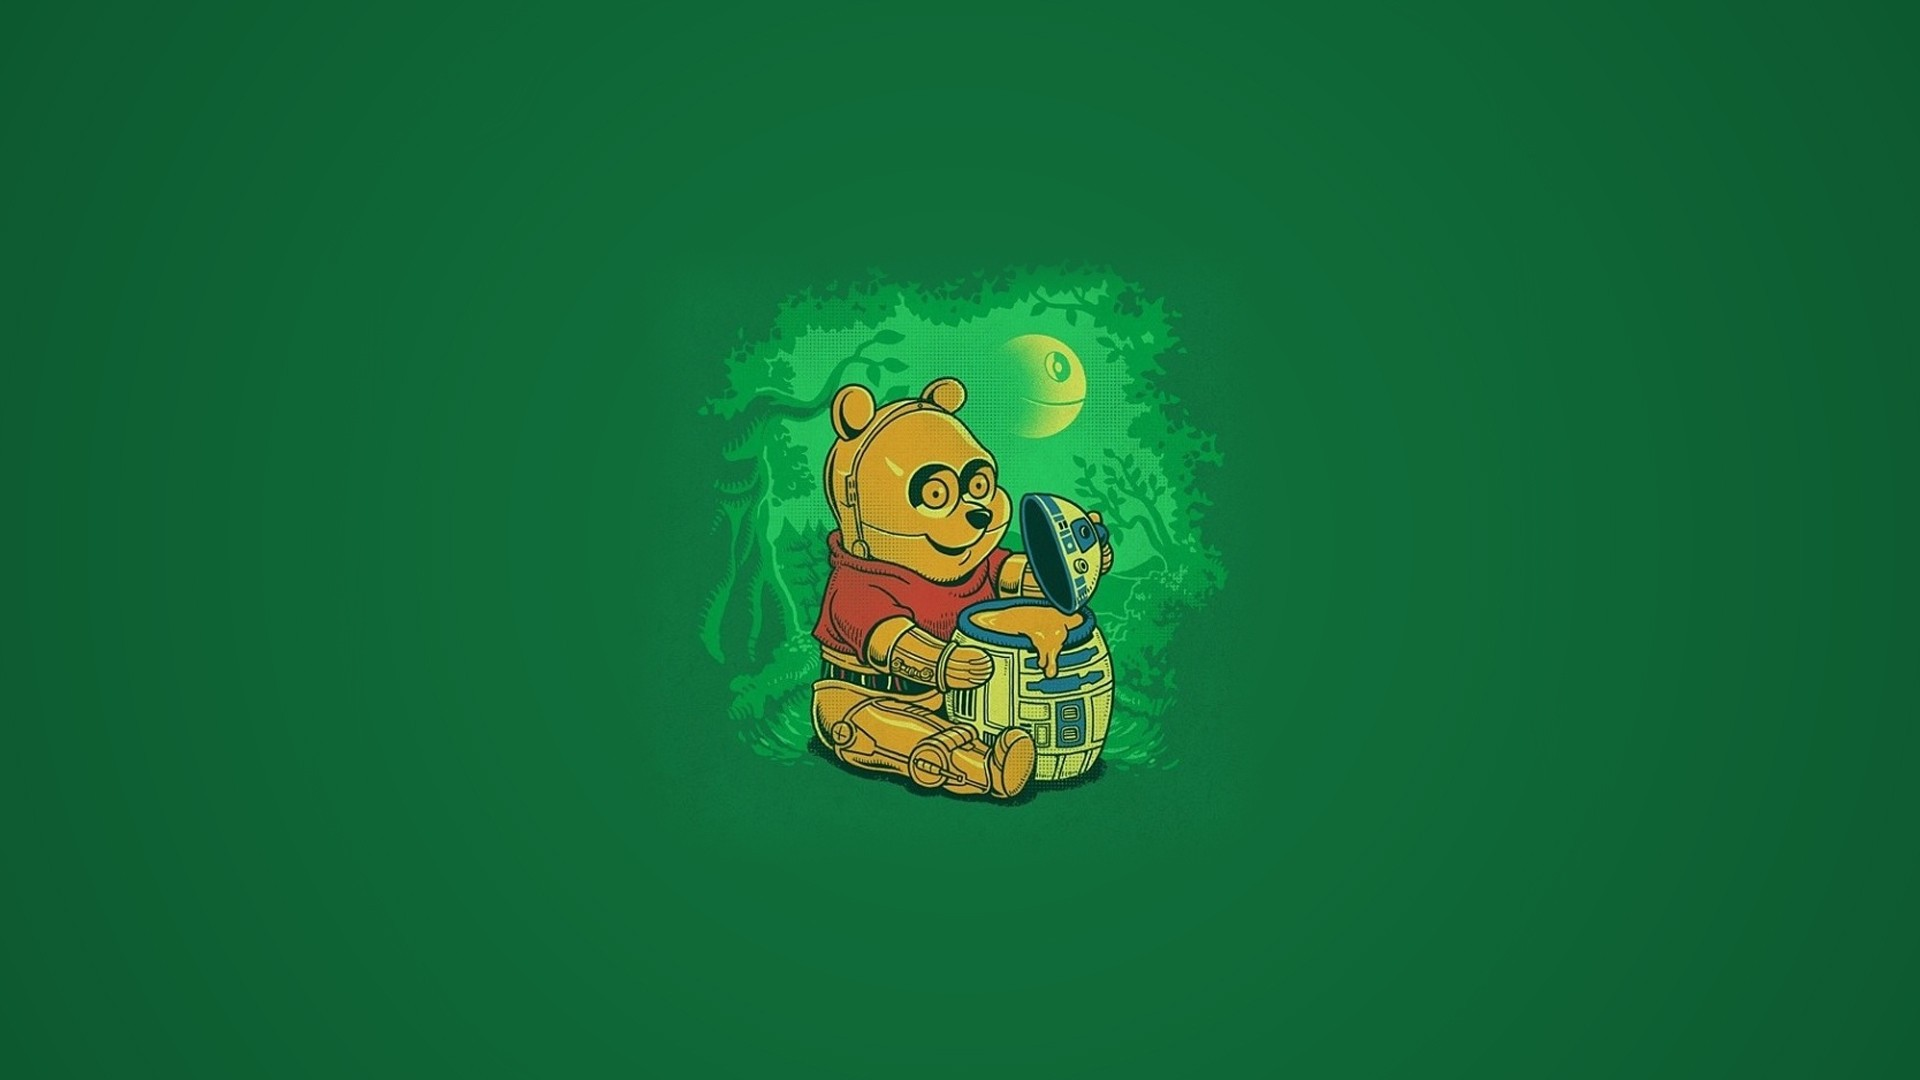 Winnie The Pooh Star Wars Crossover Full Hd Wallpaper And